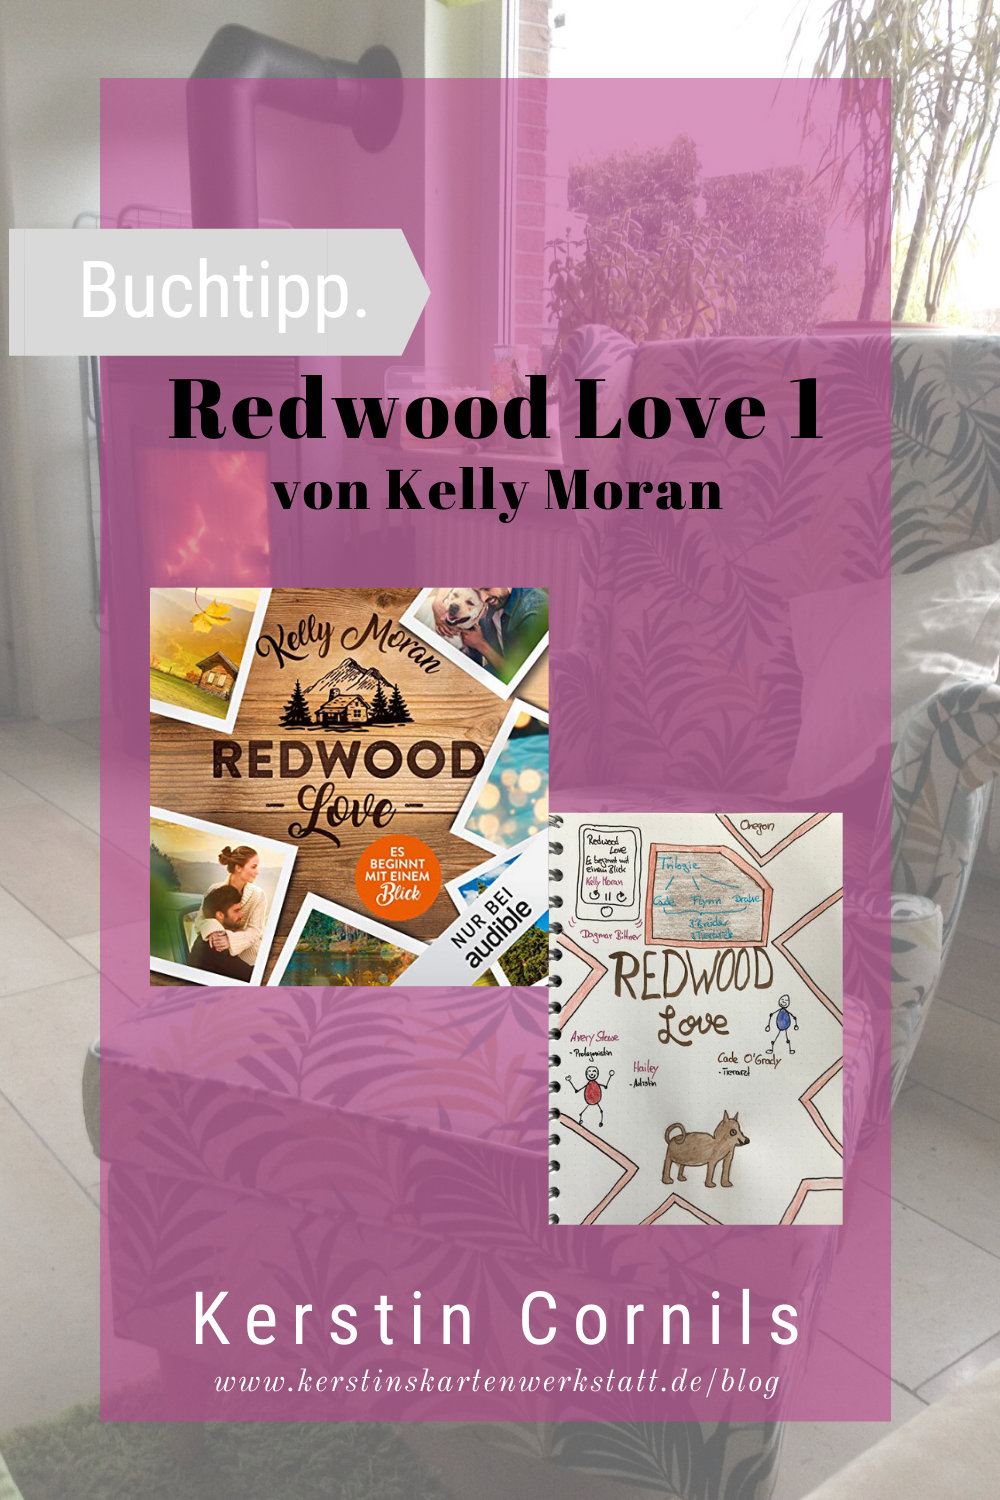 Redwood Love 1 von Kelly Moran